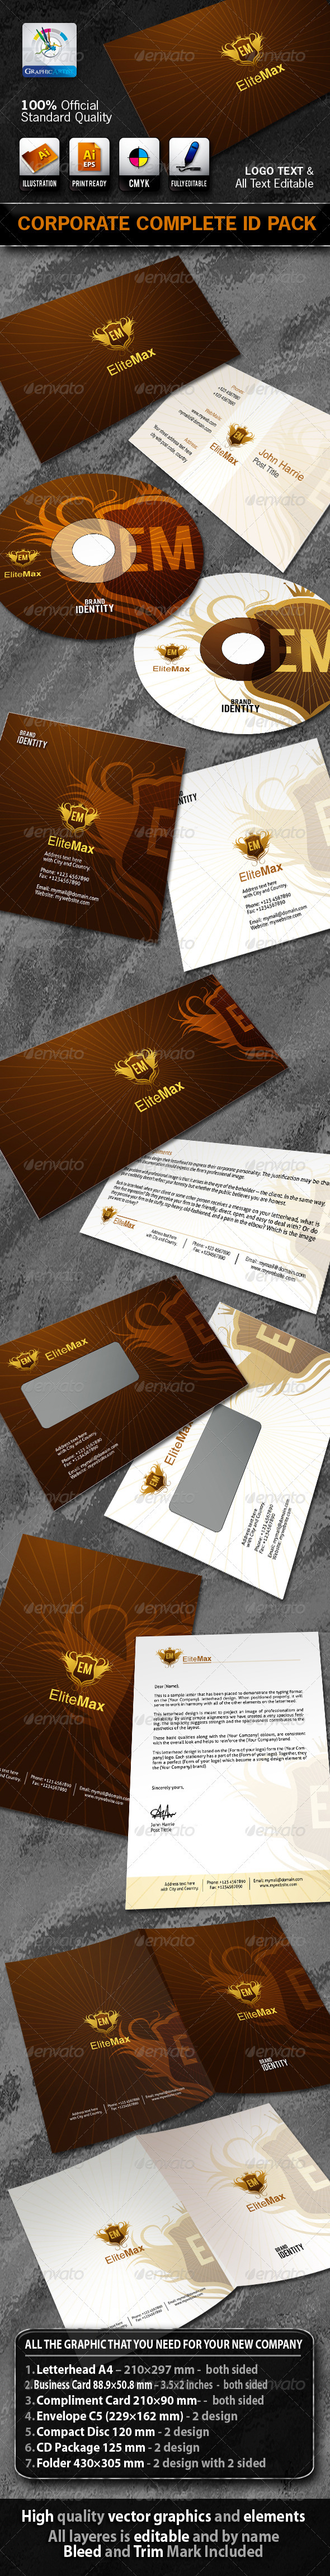 EliteMax Business Corporate ID Pack With Logo - Stationery Print Templates